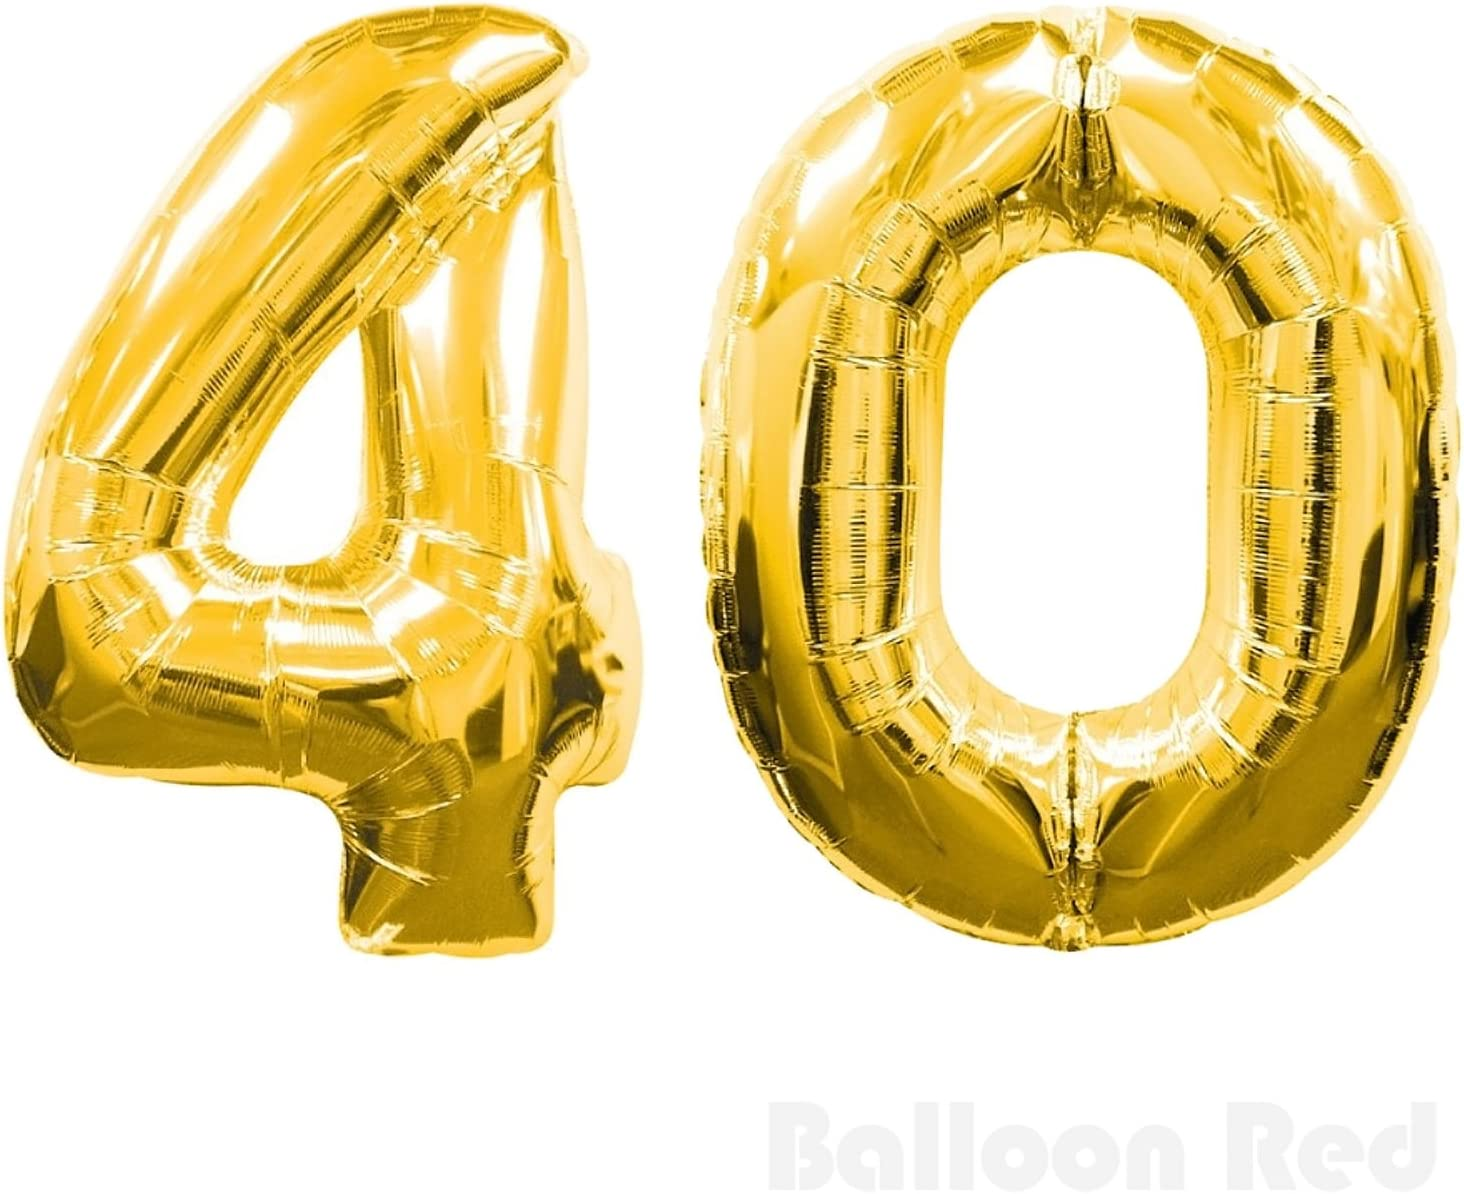 30 Inch Foil Mylar Balloons for Wall Decoration (Premium Quality, Air or Pure Helium Fill Only), Glossy Gold, Number 40